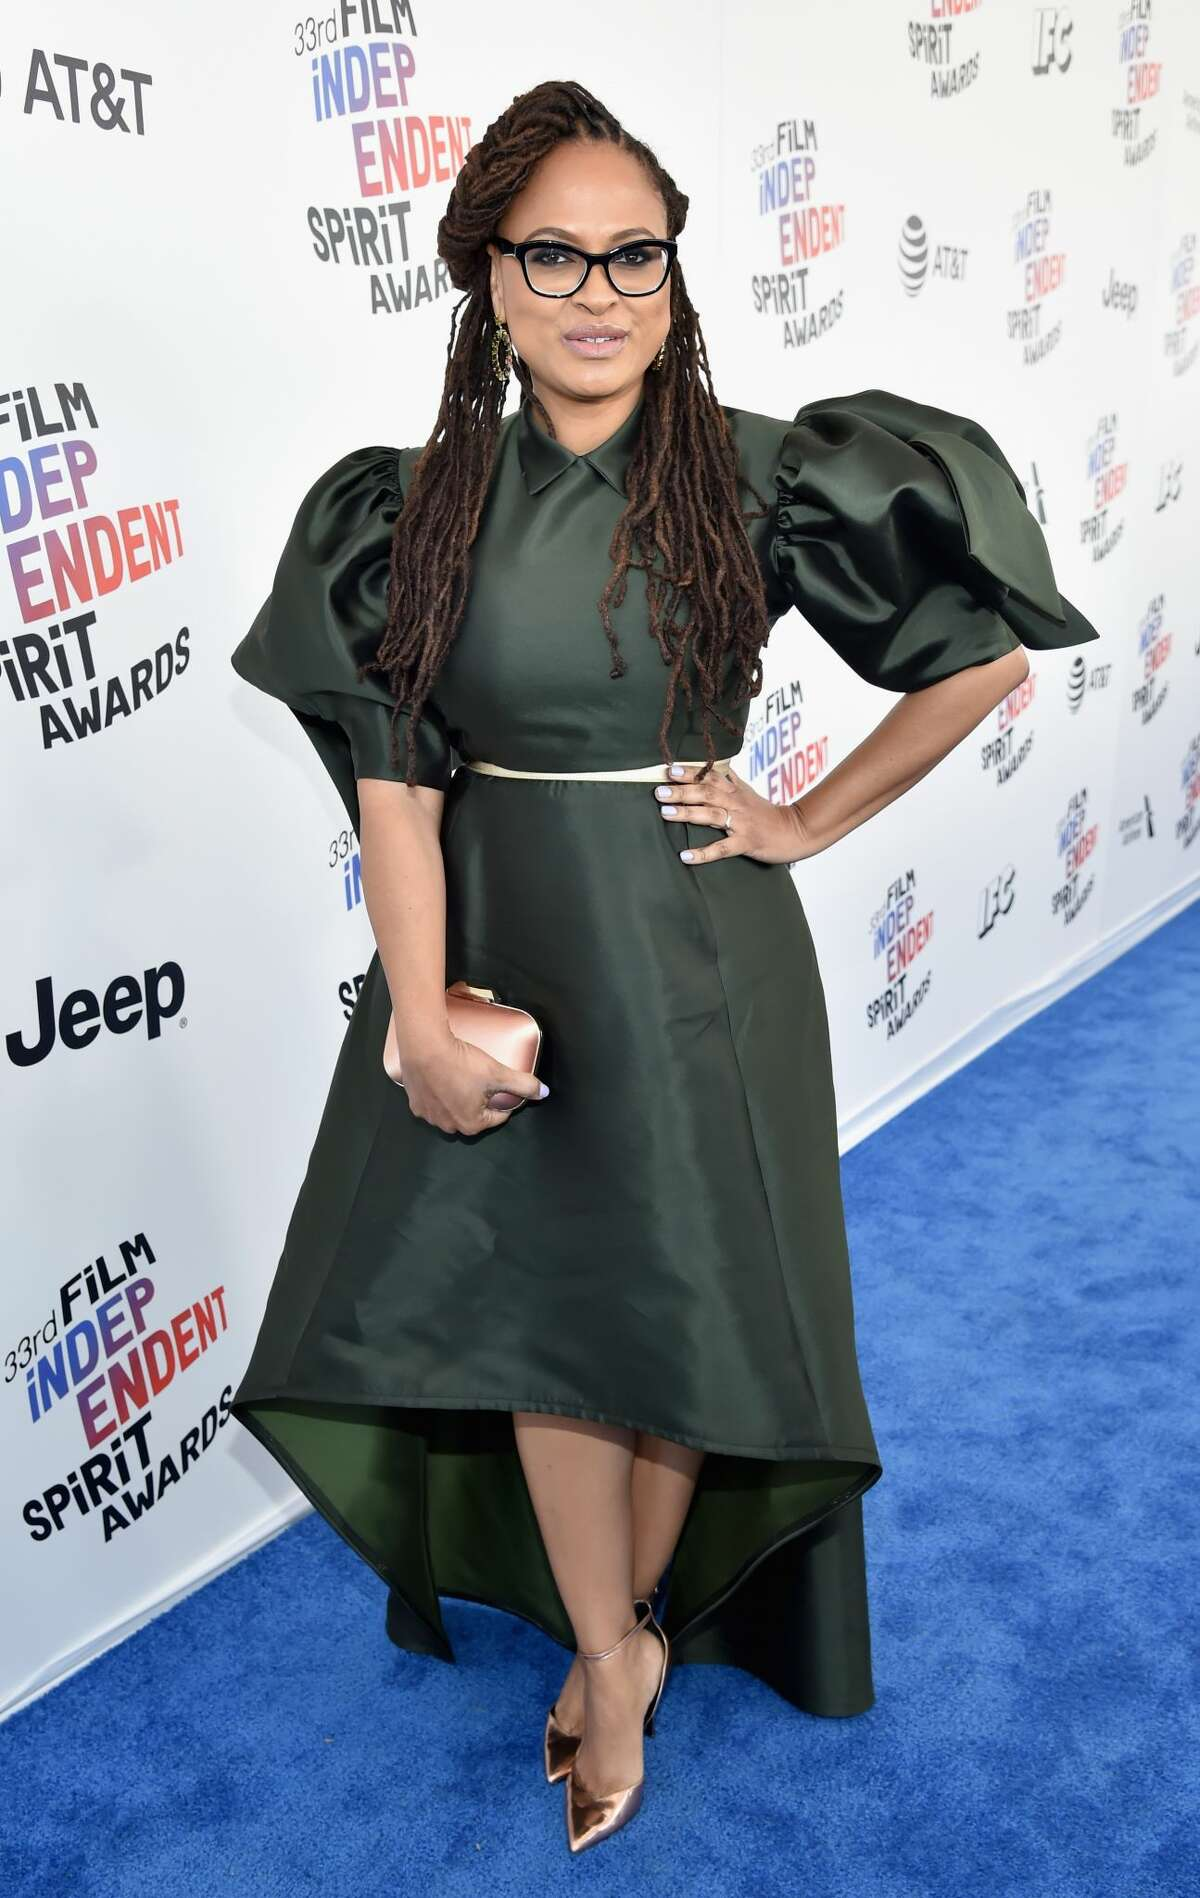 SANTA MONICA, CA - MARCH 03: Director Ava DuVernay attends the 2018 Film Independent Spirit Awards on March 3, 2018 in Santa Monica, California. (Photo by Kevin Mazur/Getty Images)